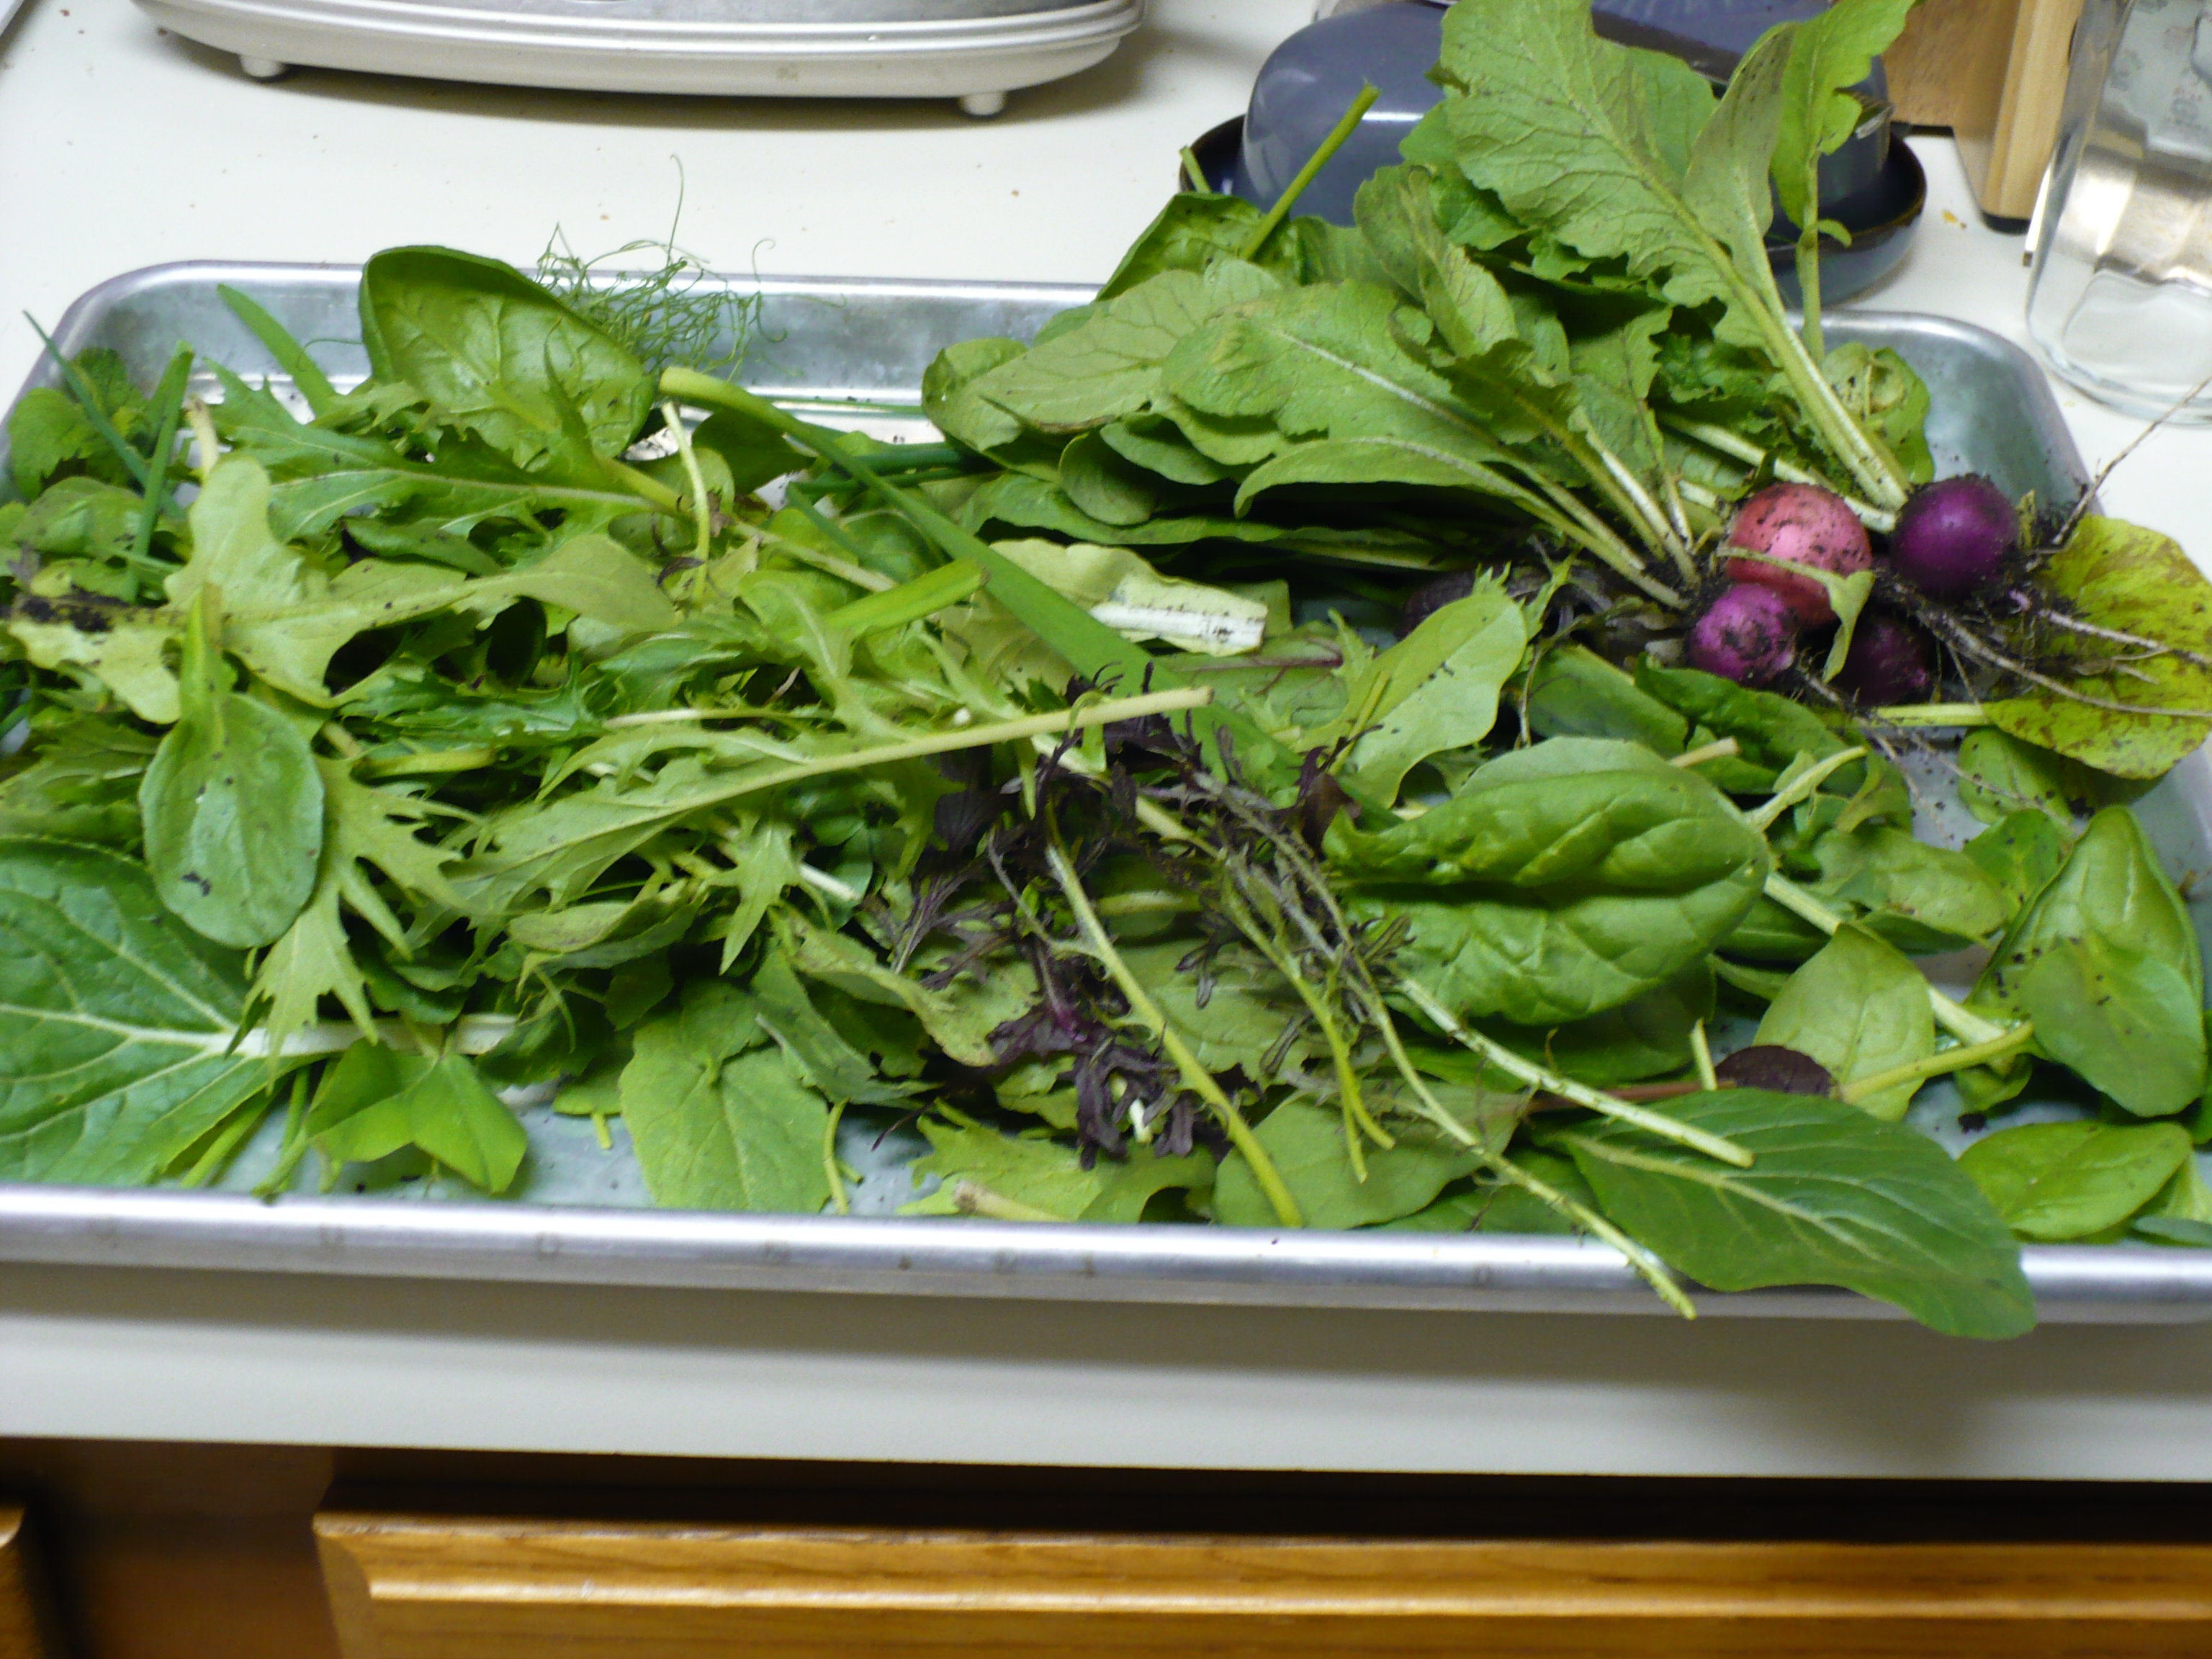 The radishes and greens are spread out on a cookie sheet. Look at all that dirt!